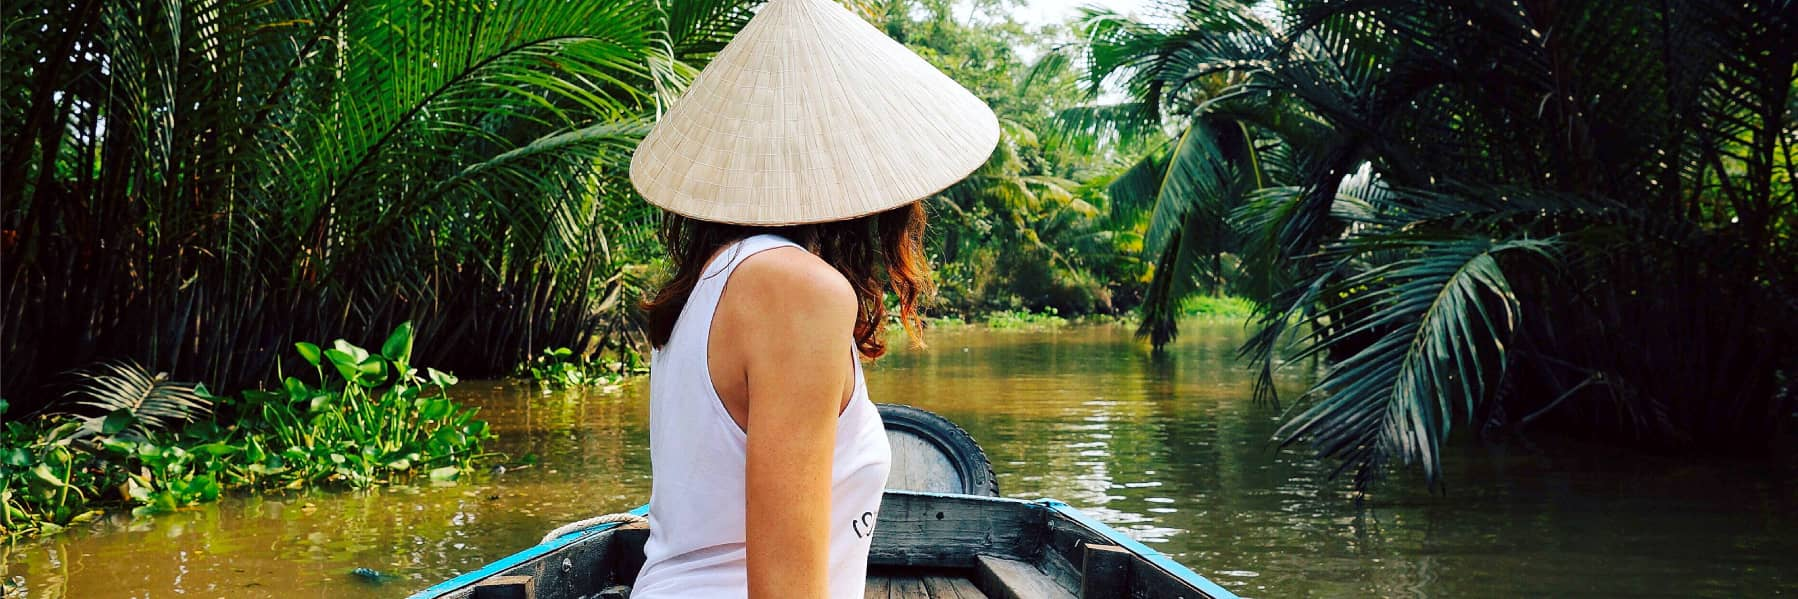 Mekong Delta Tour & Cu Chi Tunnels (Ho Chi Minh City) – Full Day gallery